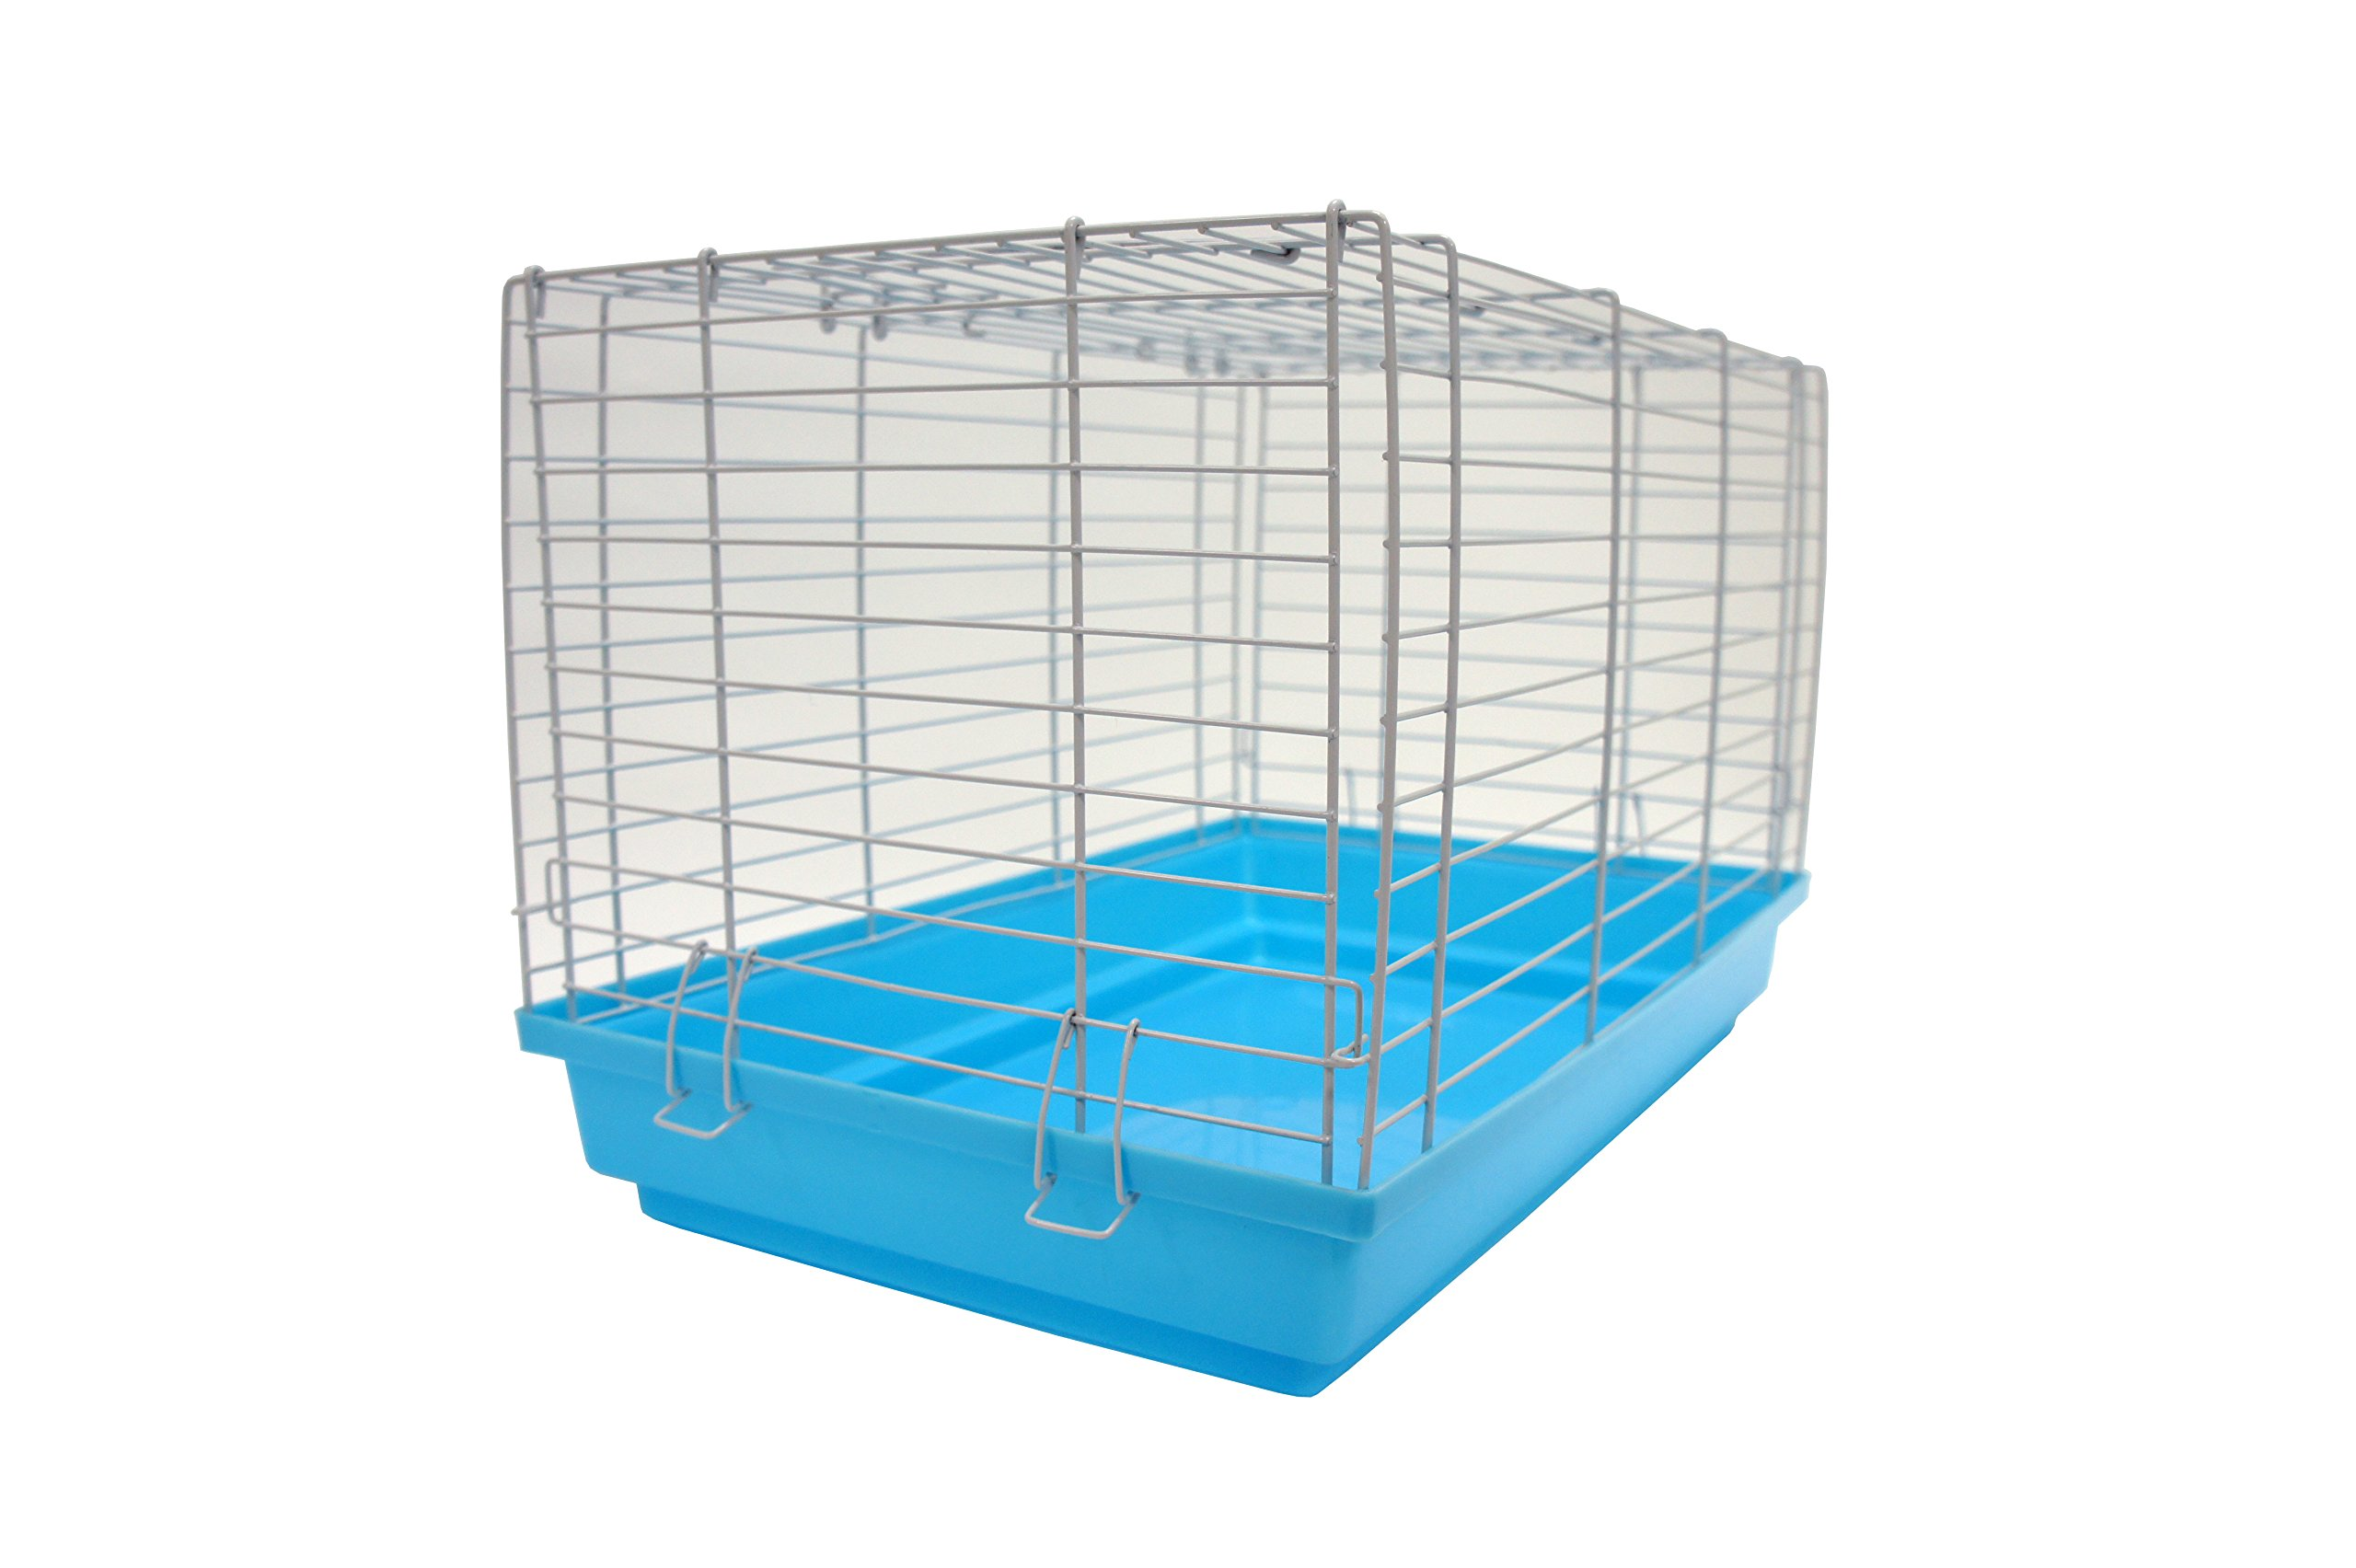 YML 18'' Small Animal Cage & Pet Enclosure, Light Blue - Lot of 8